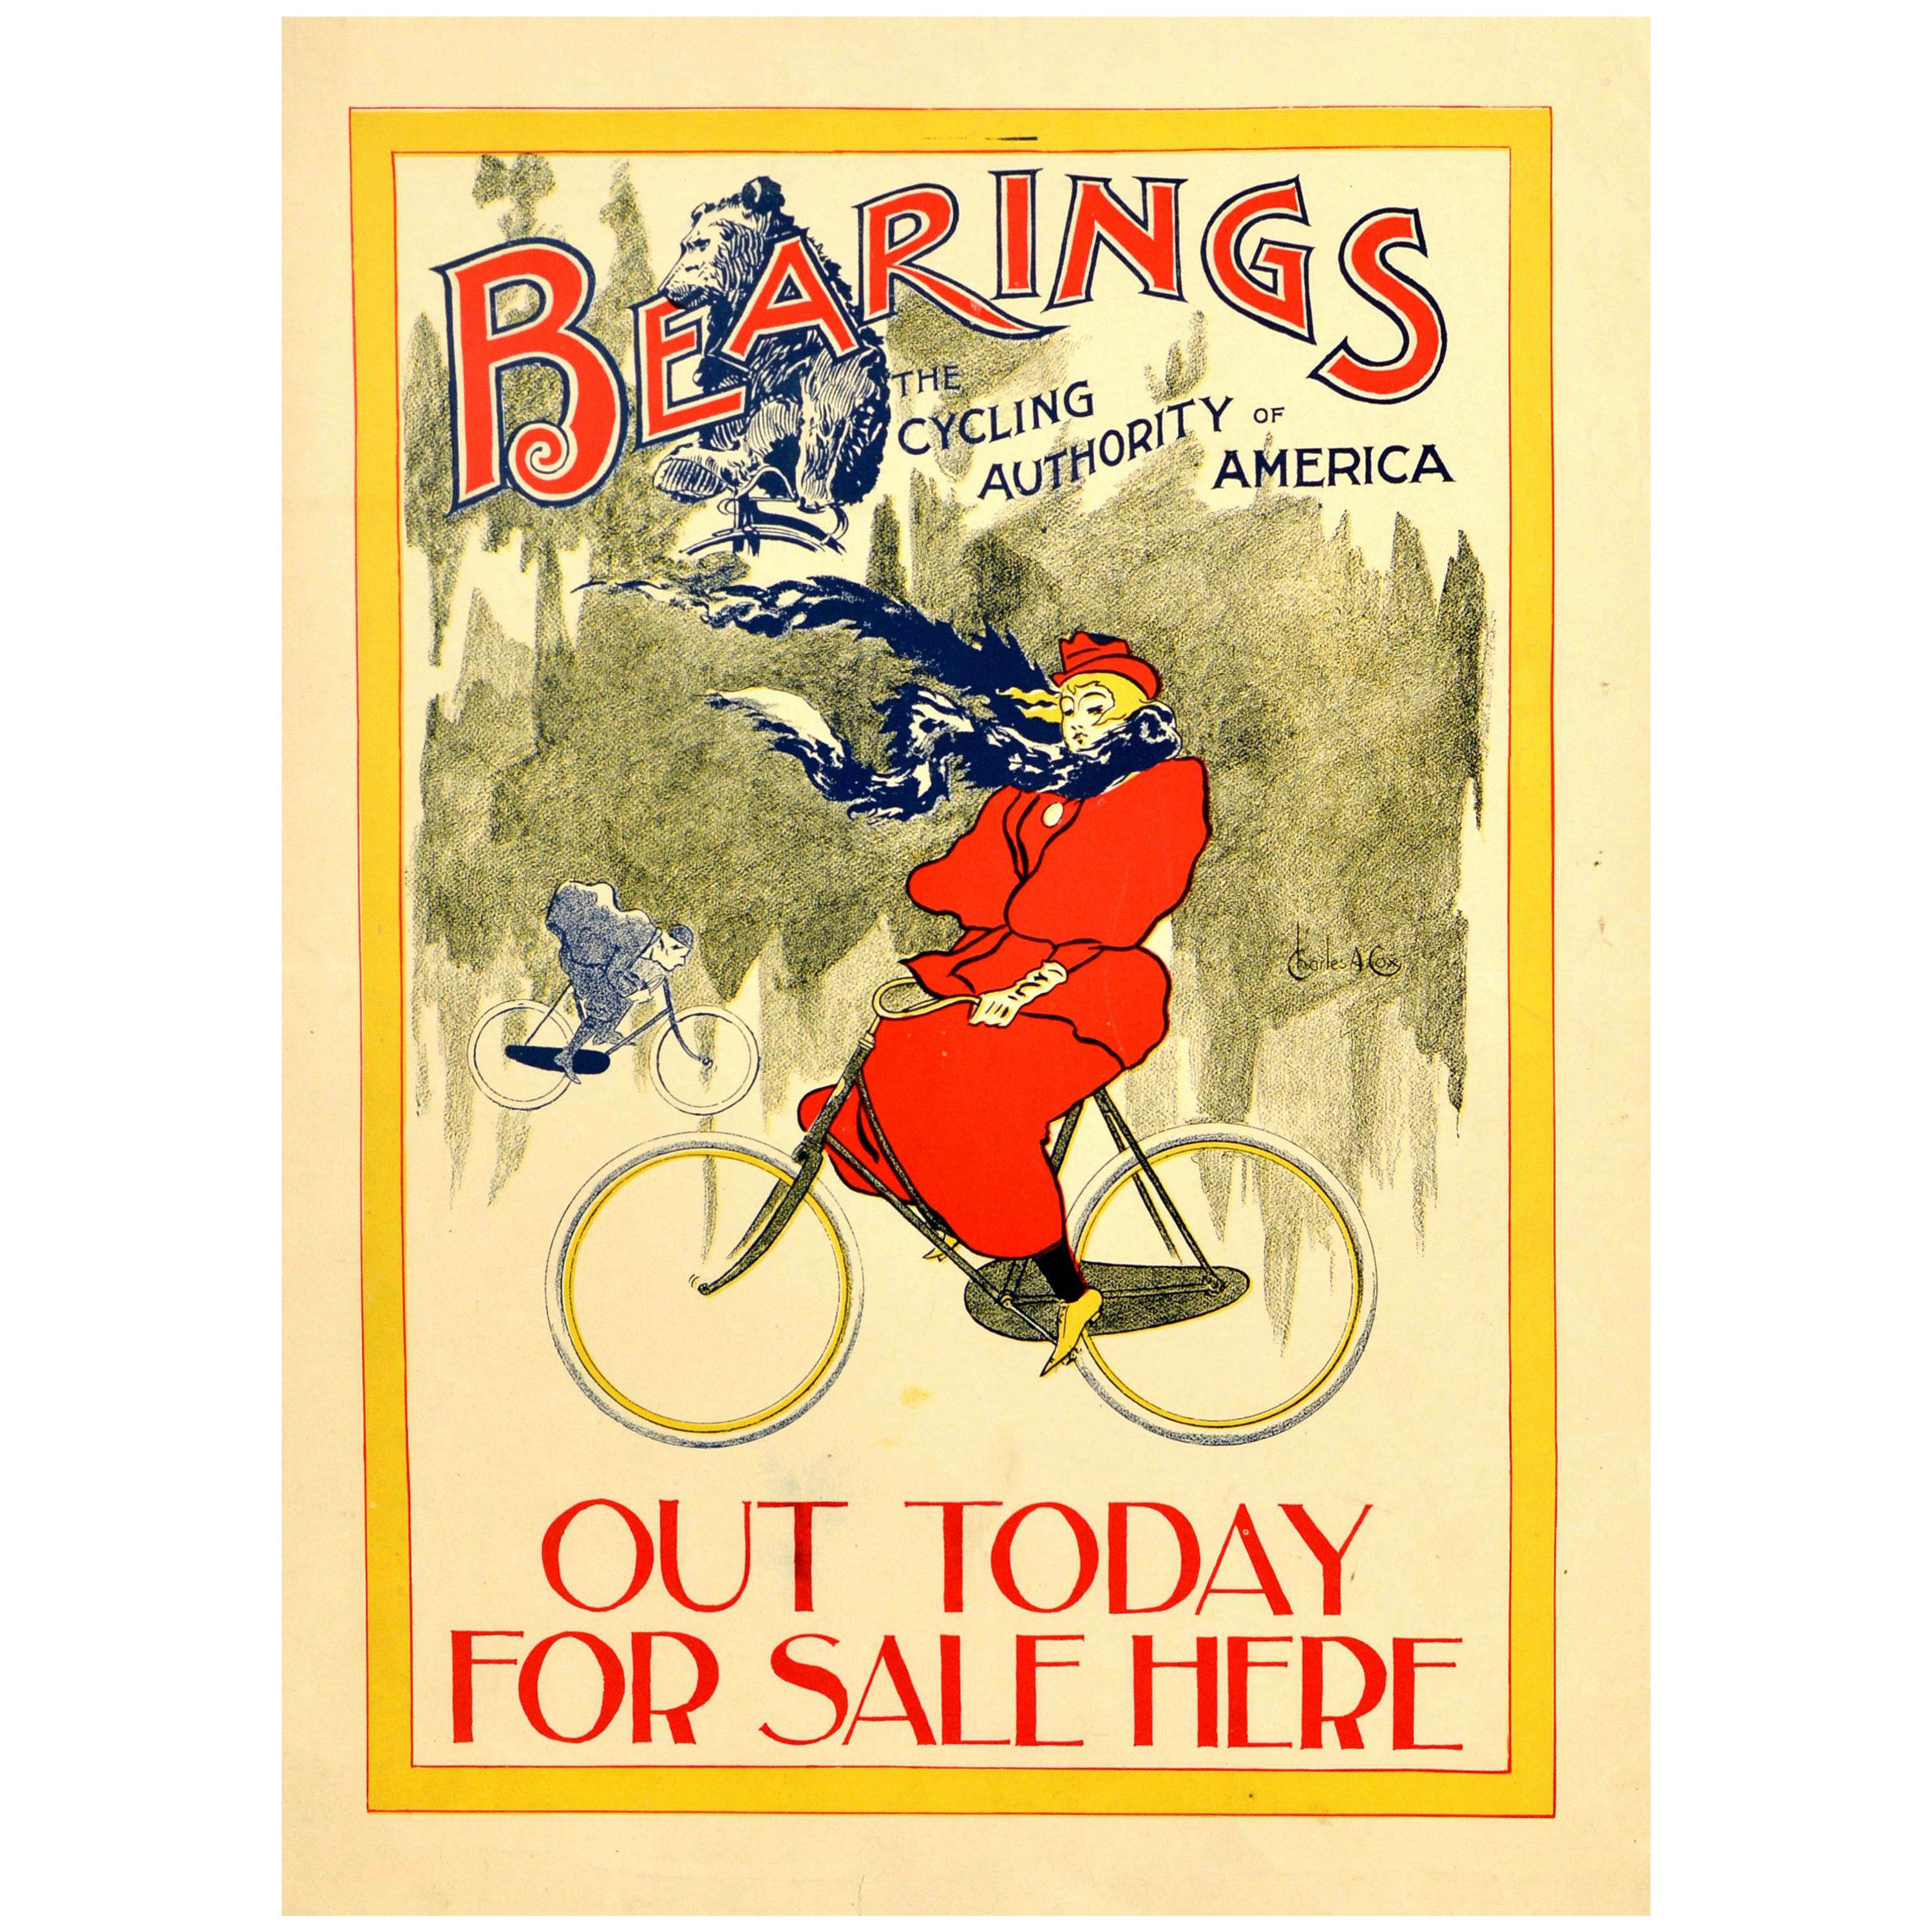 Original Antique Poster Bearings The Cycling Authority Of America Magazine Art